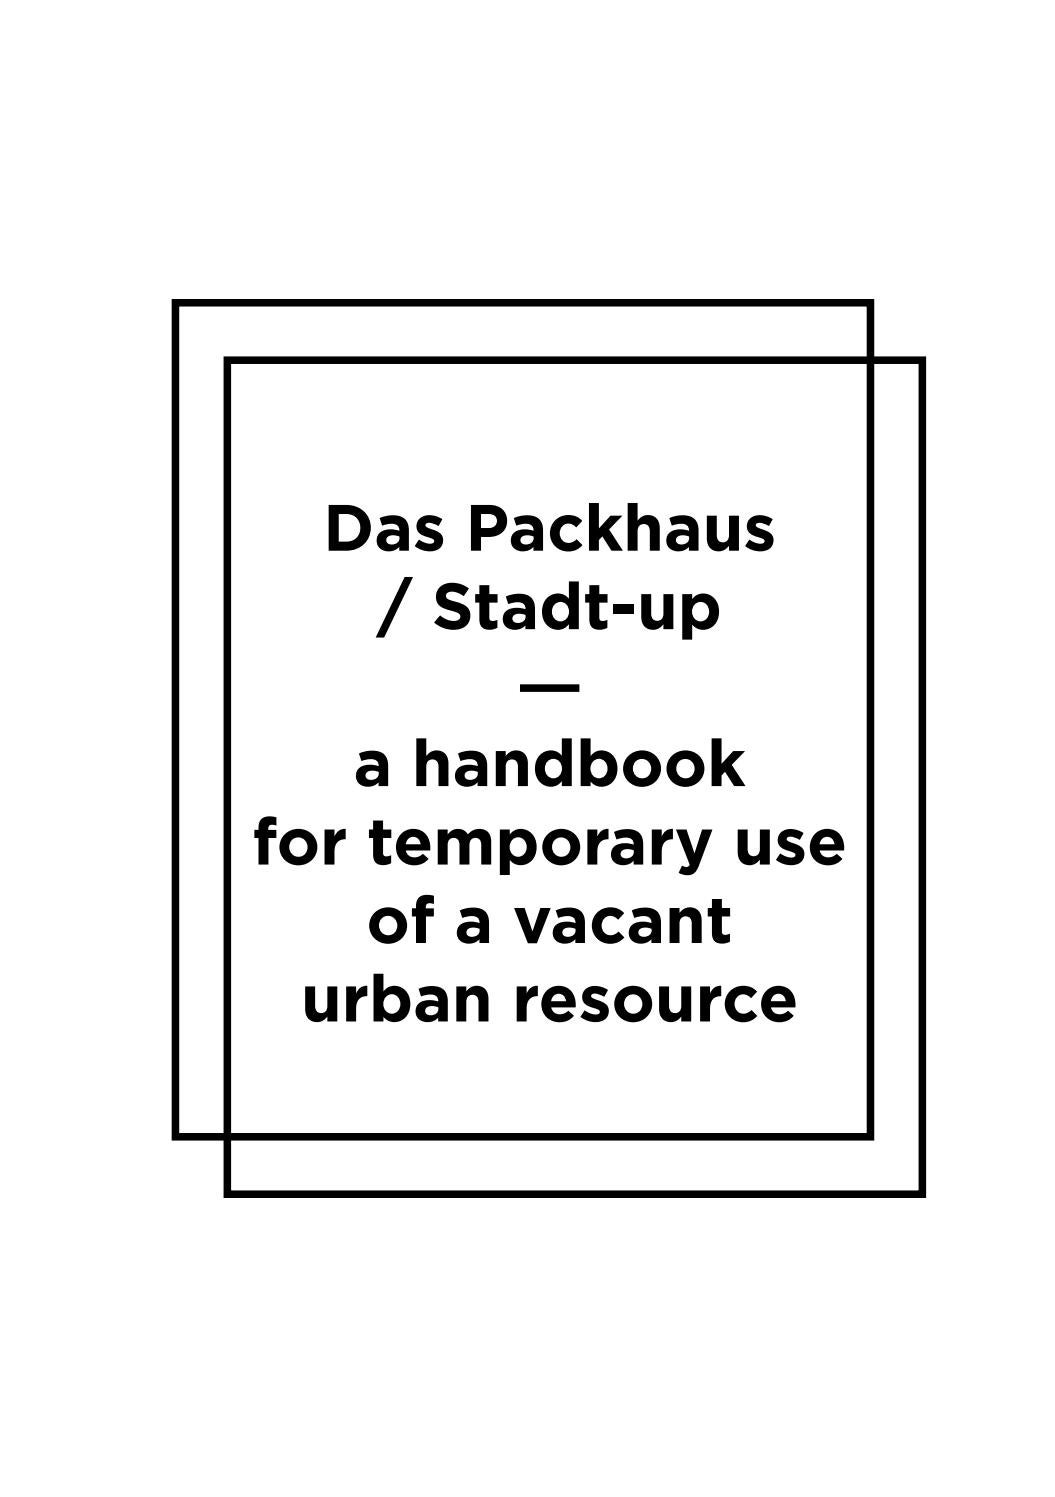 Das Packhaus / Stadt-up a handbook for temporary use of a vacant ...